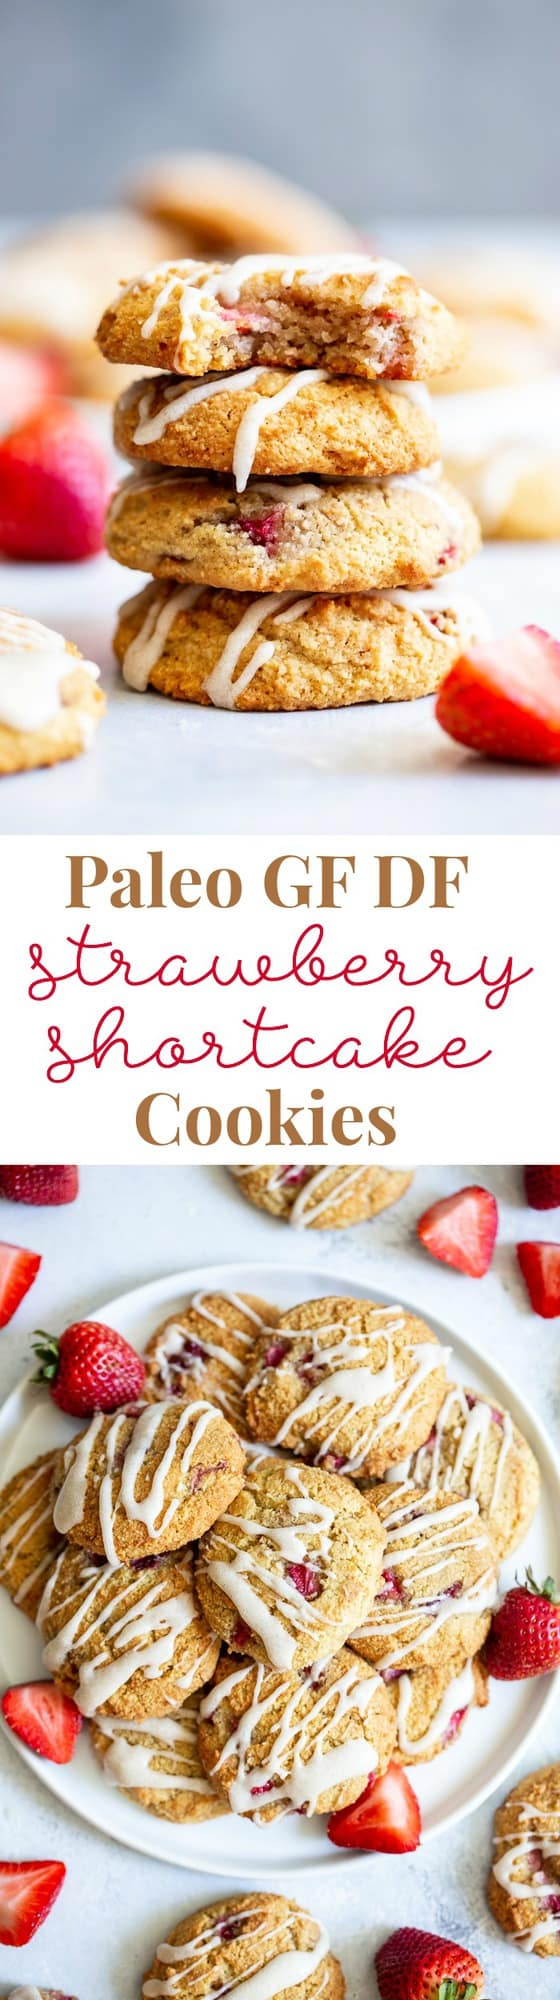 These strawberry shortcake cookies are super soft and cake-like with buttery flavor, loads of sweet juicy strawberries and maple glaze.  They're paleo, grain free, gluten-free, kid approved, and irresistibly delicious!